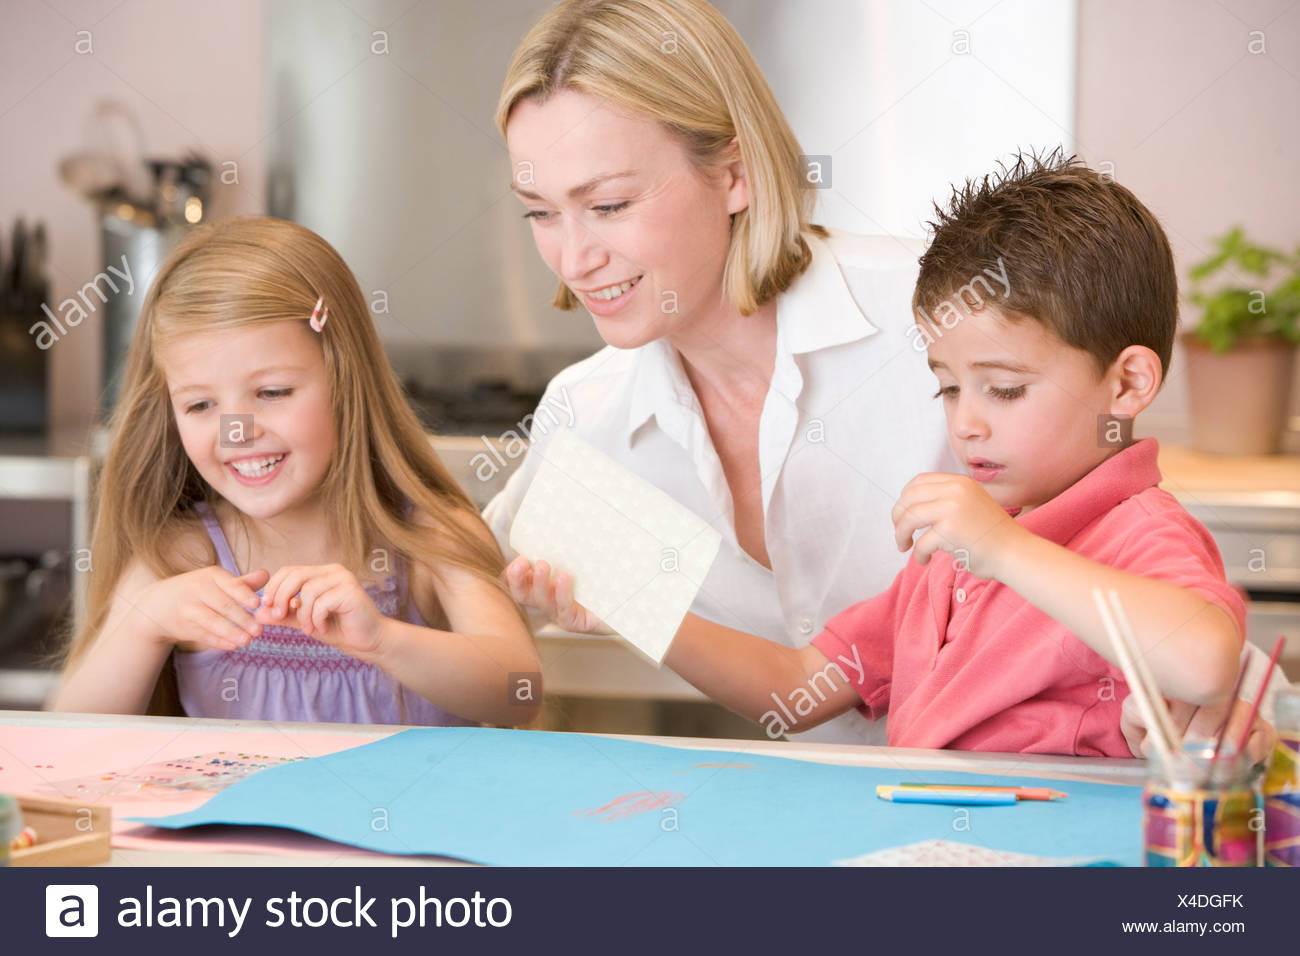 Woman and two young children in kitchen with art project smiling - Stock Image